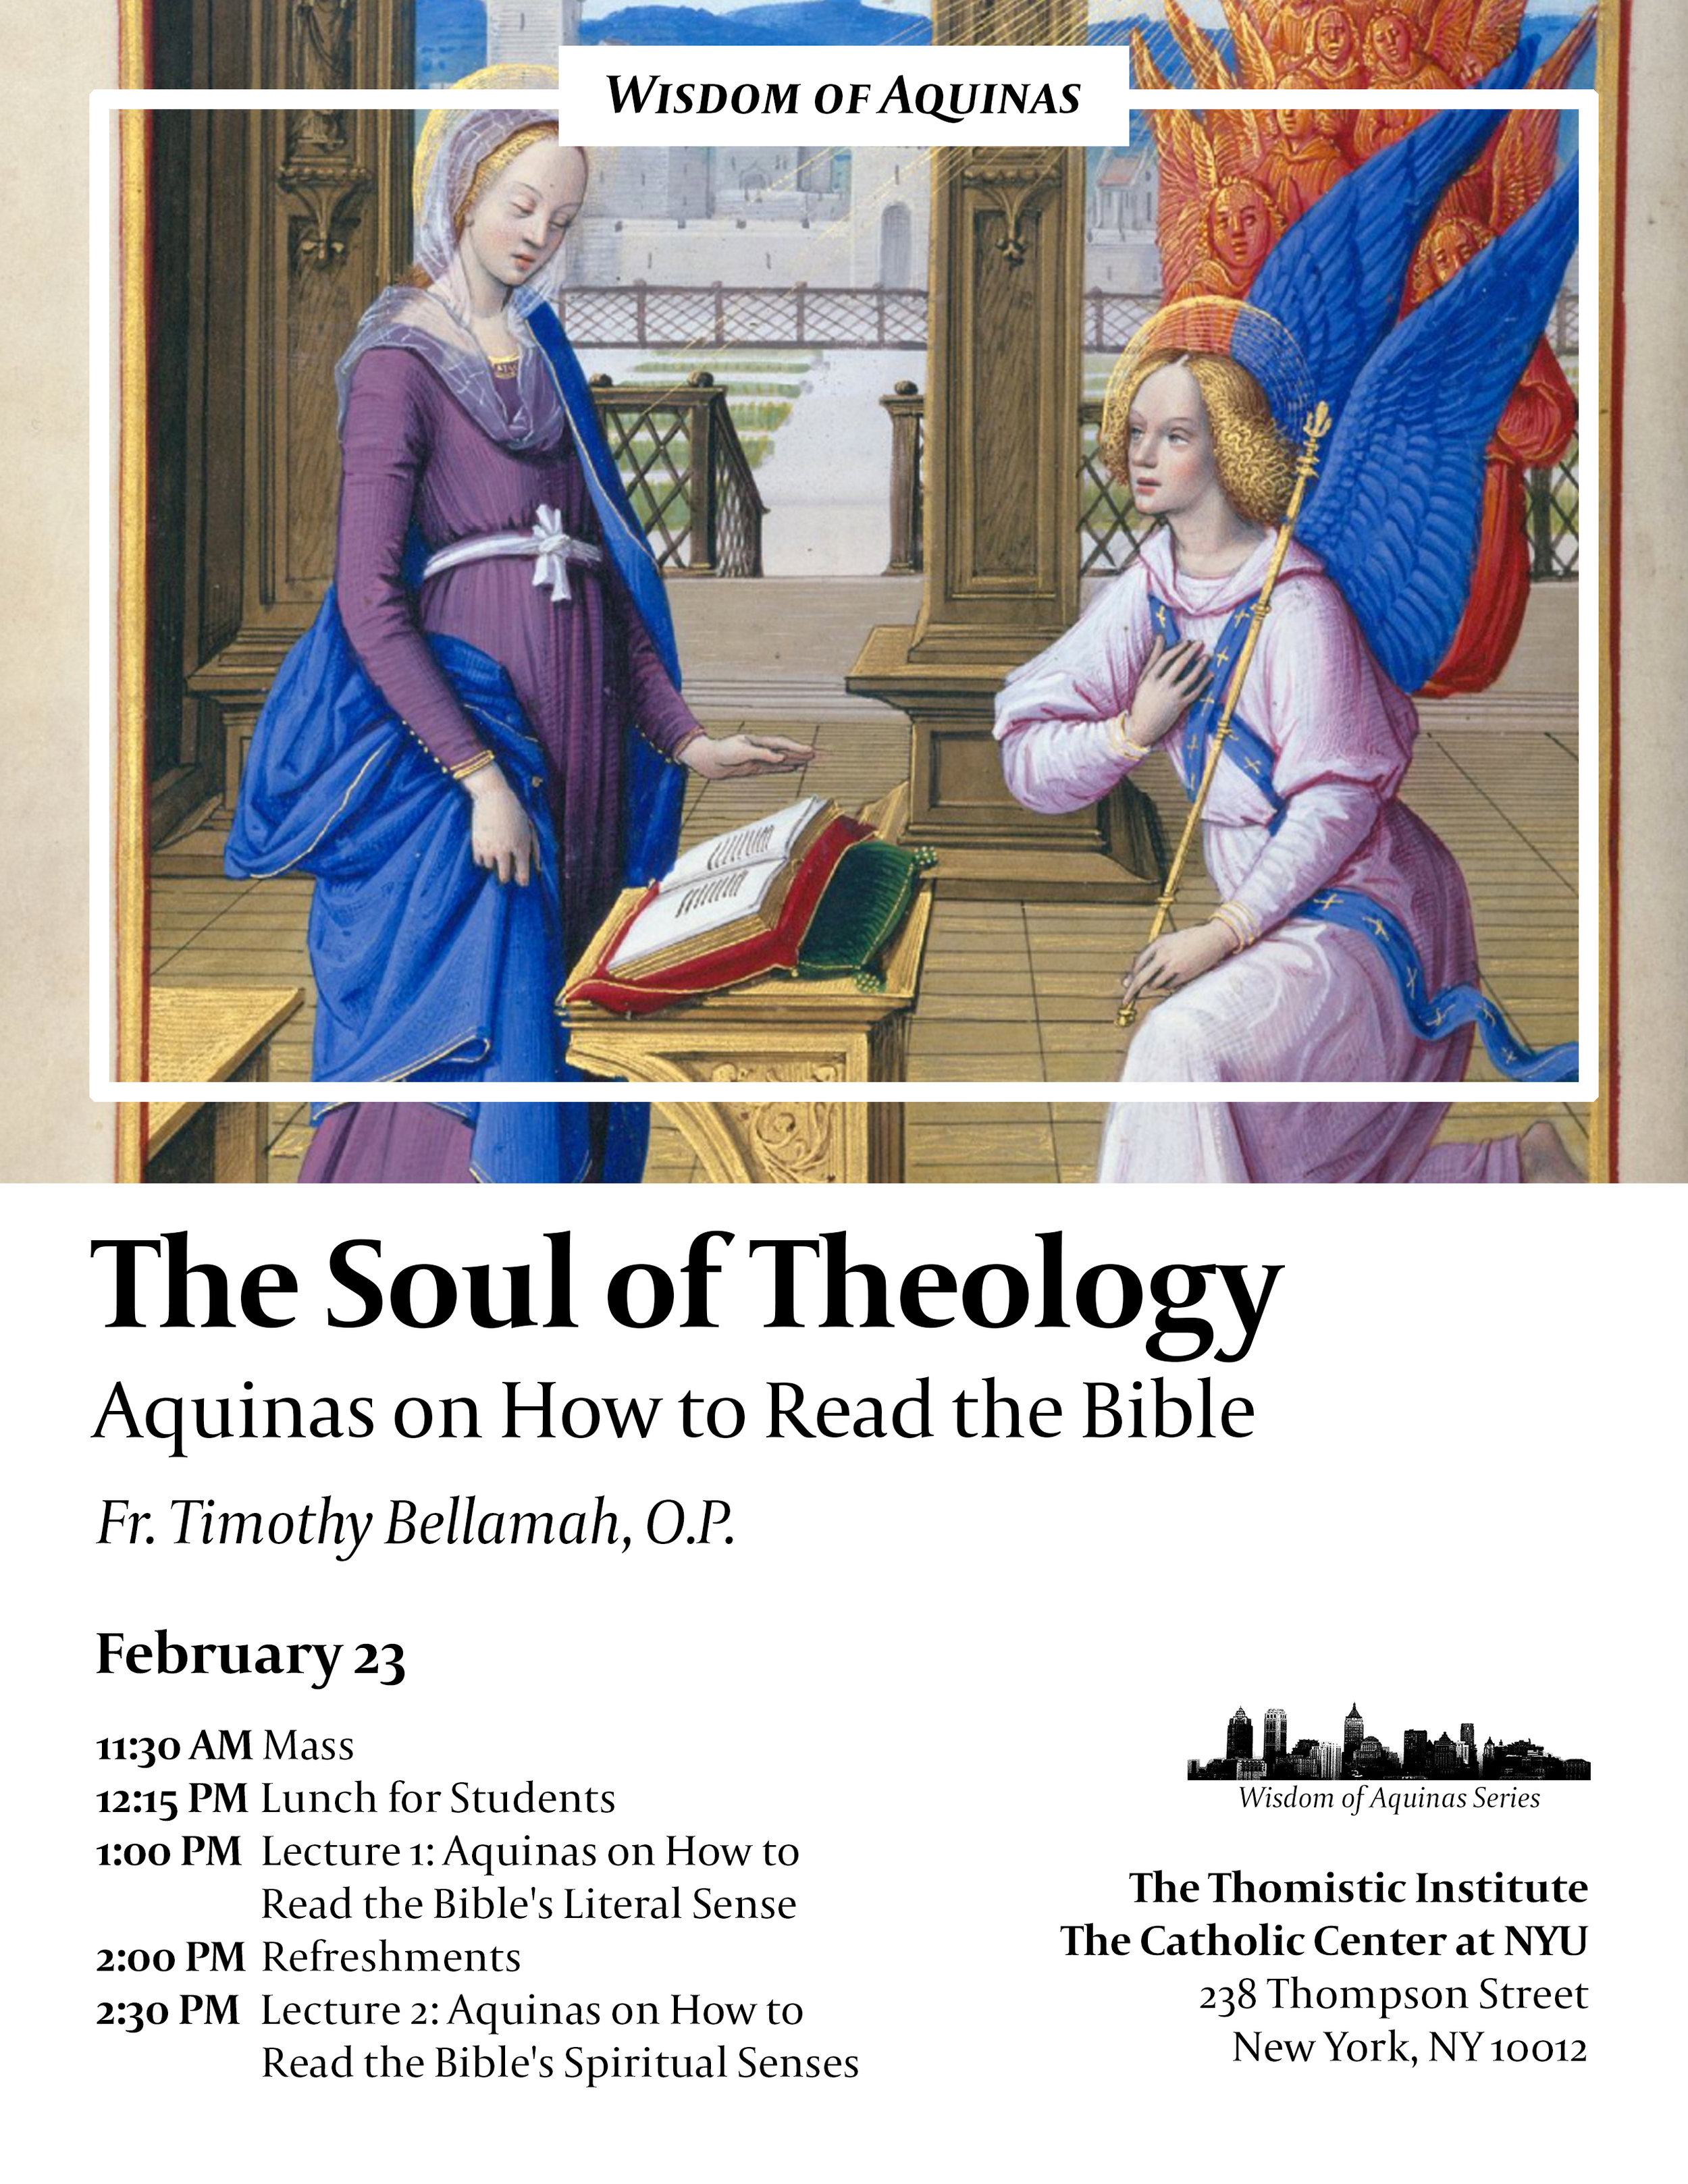 The Soul of Theology: Aquinas on How to Read the Bible — The